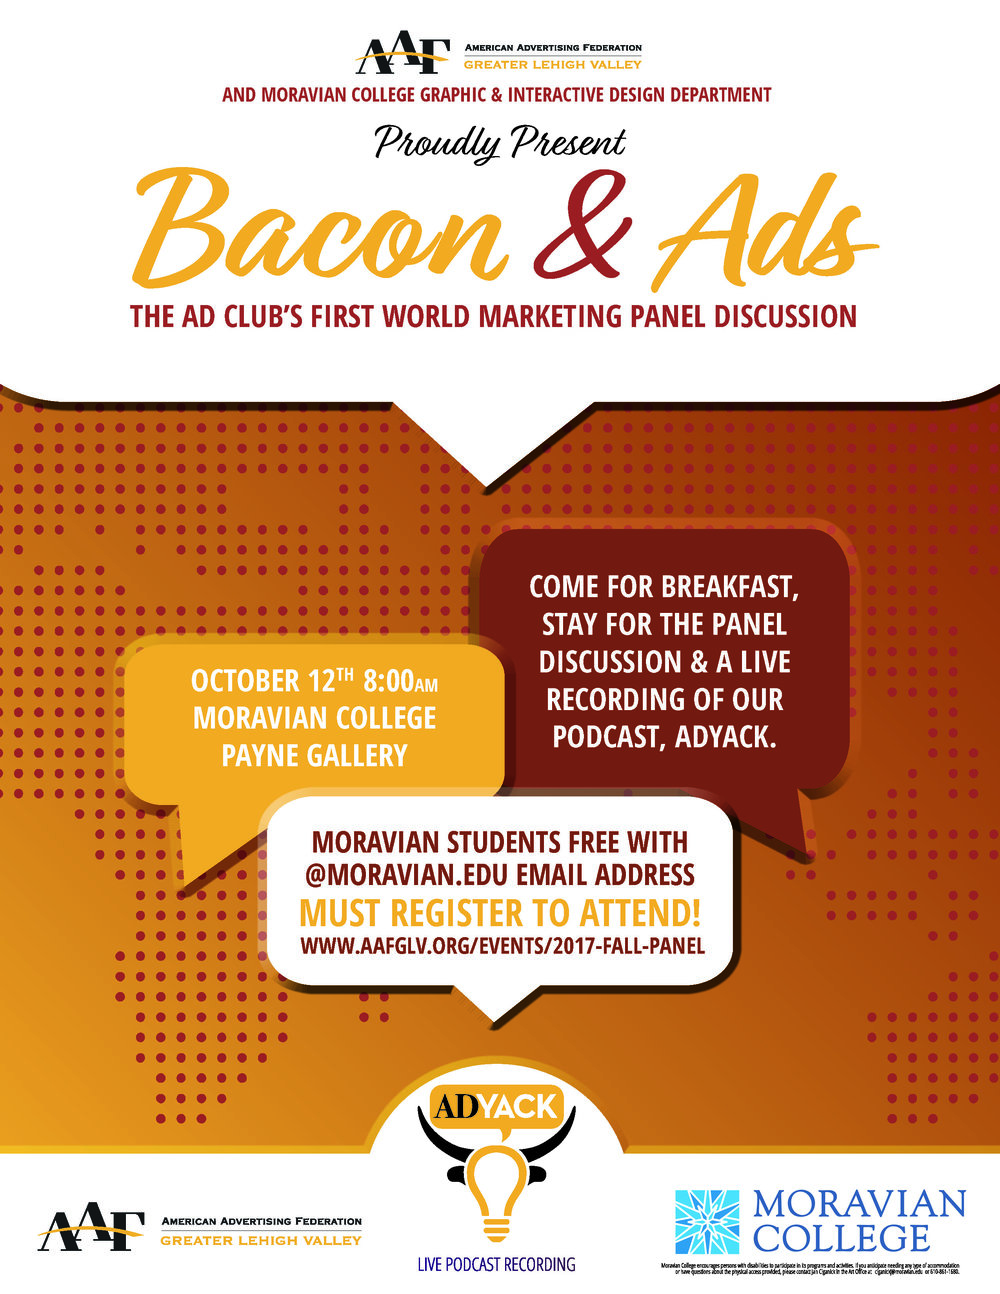 Bacon & Ads Poster.jpg